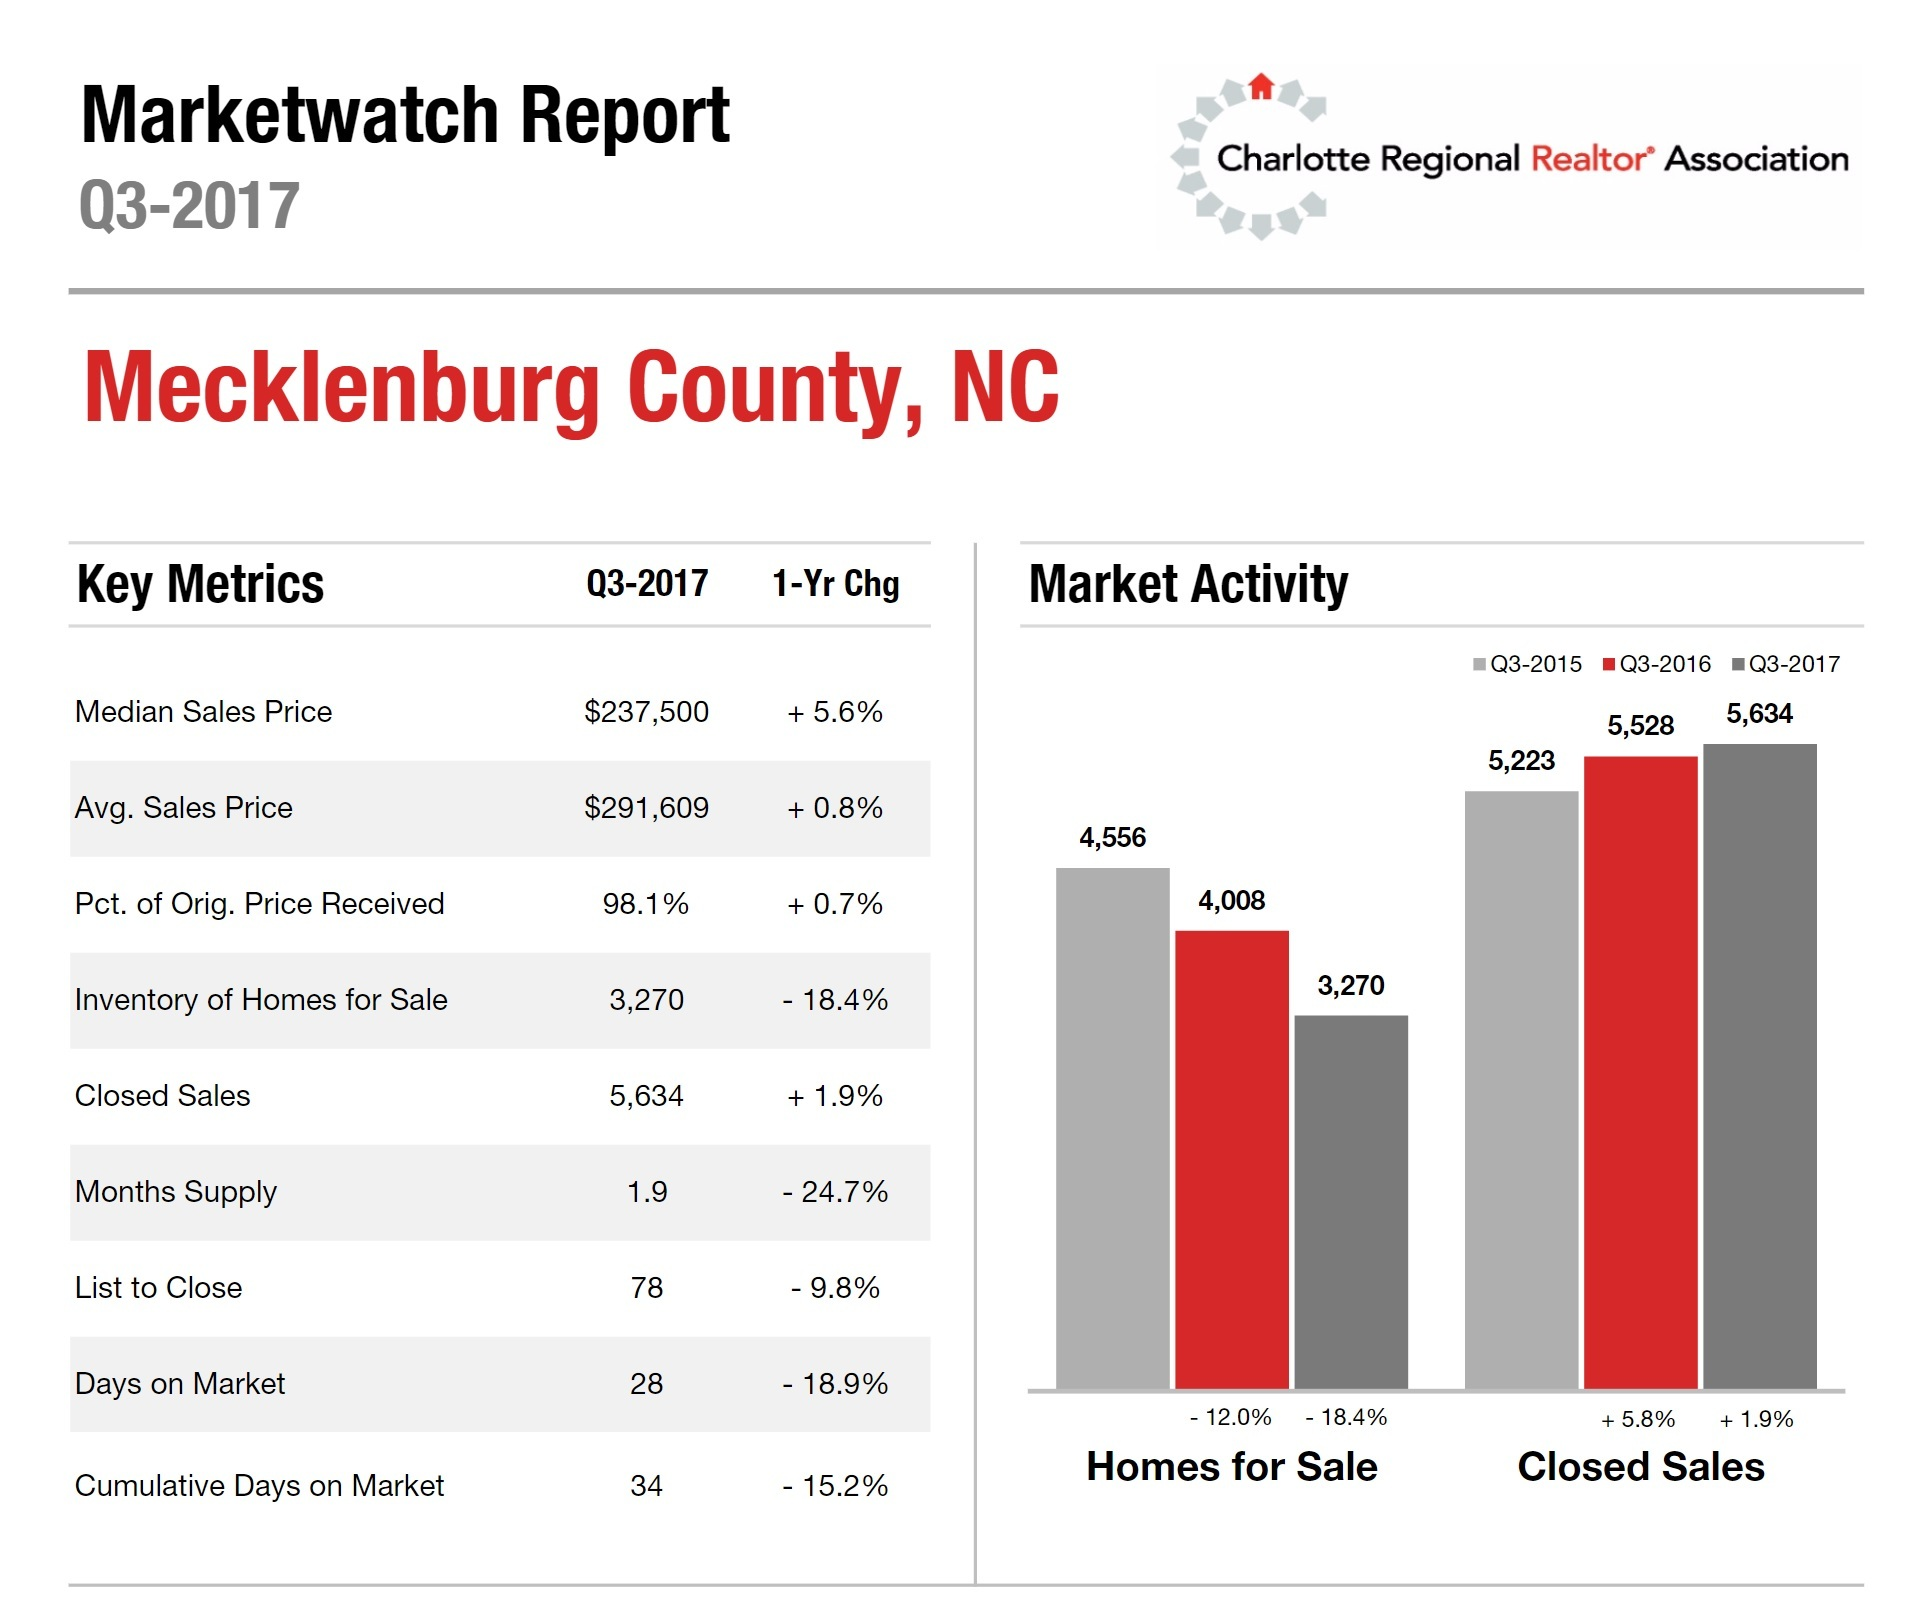 Mecklenburg County, NC Housing Market Update: 3rd Quarter 2017